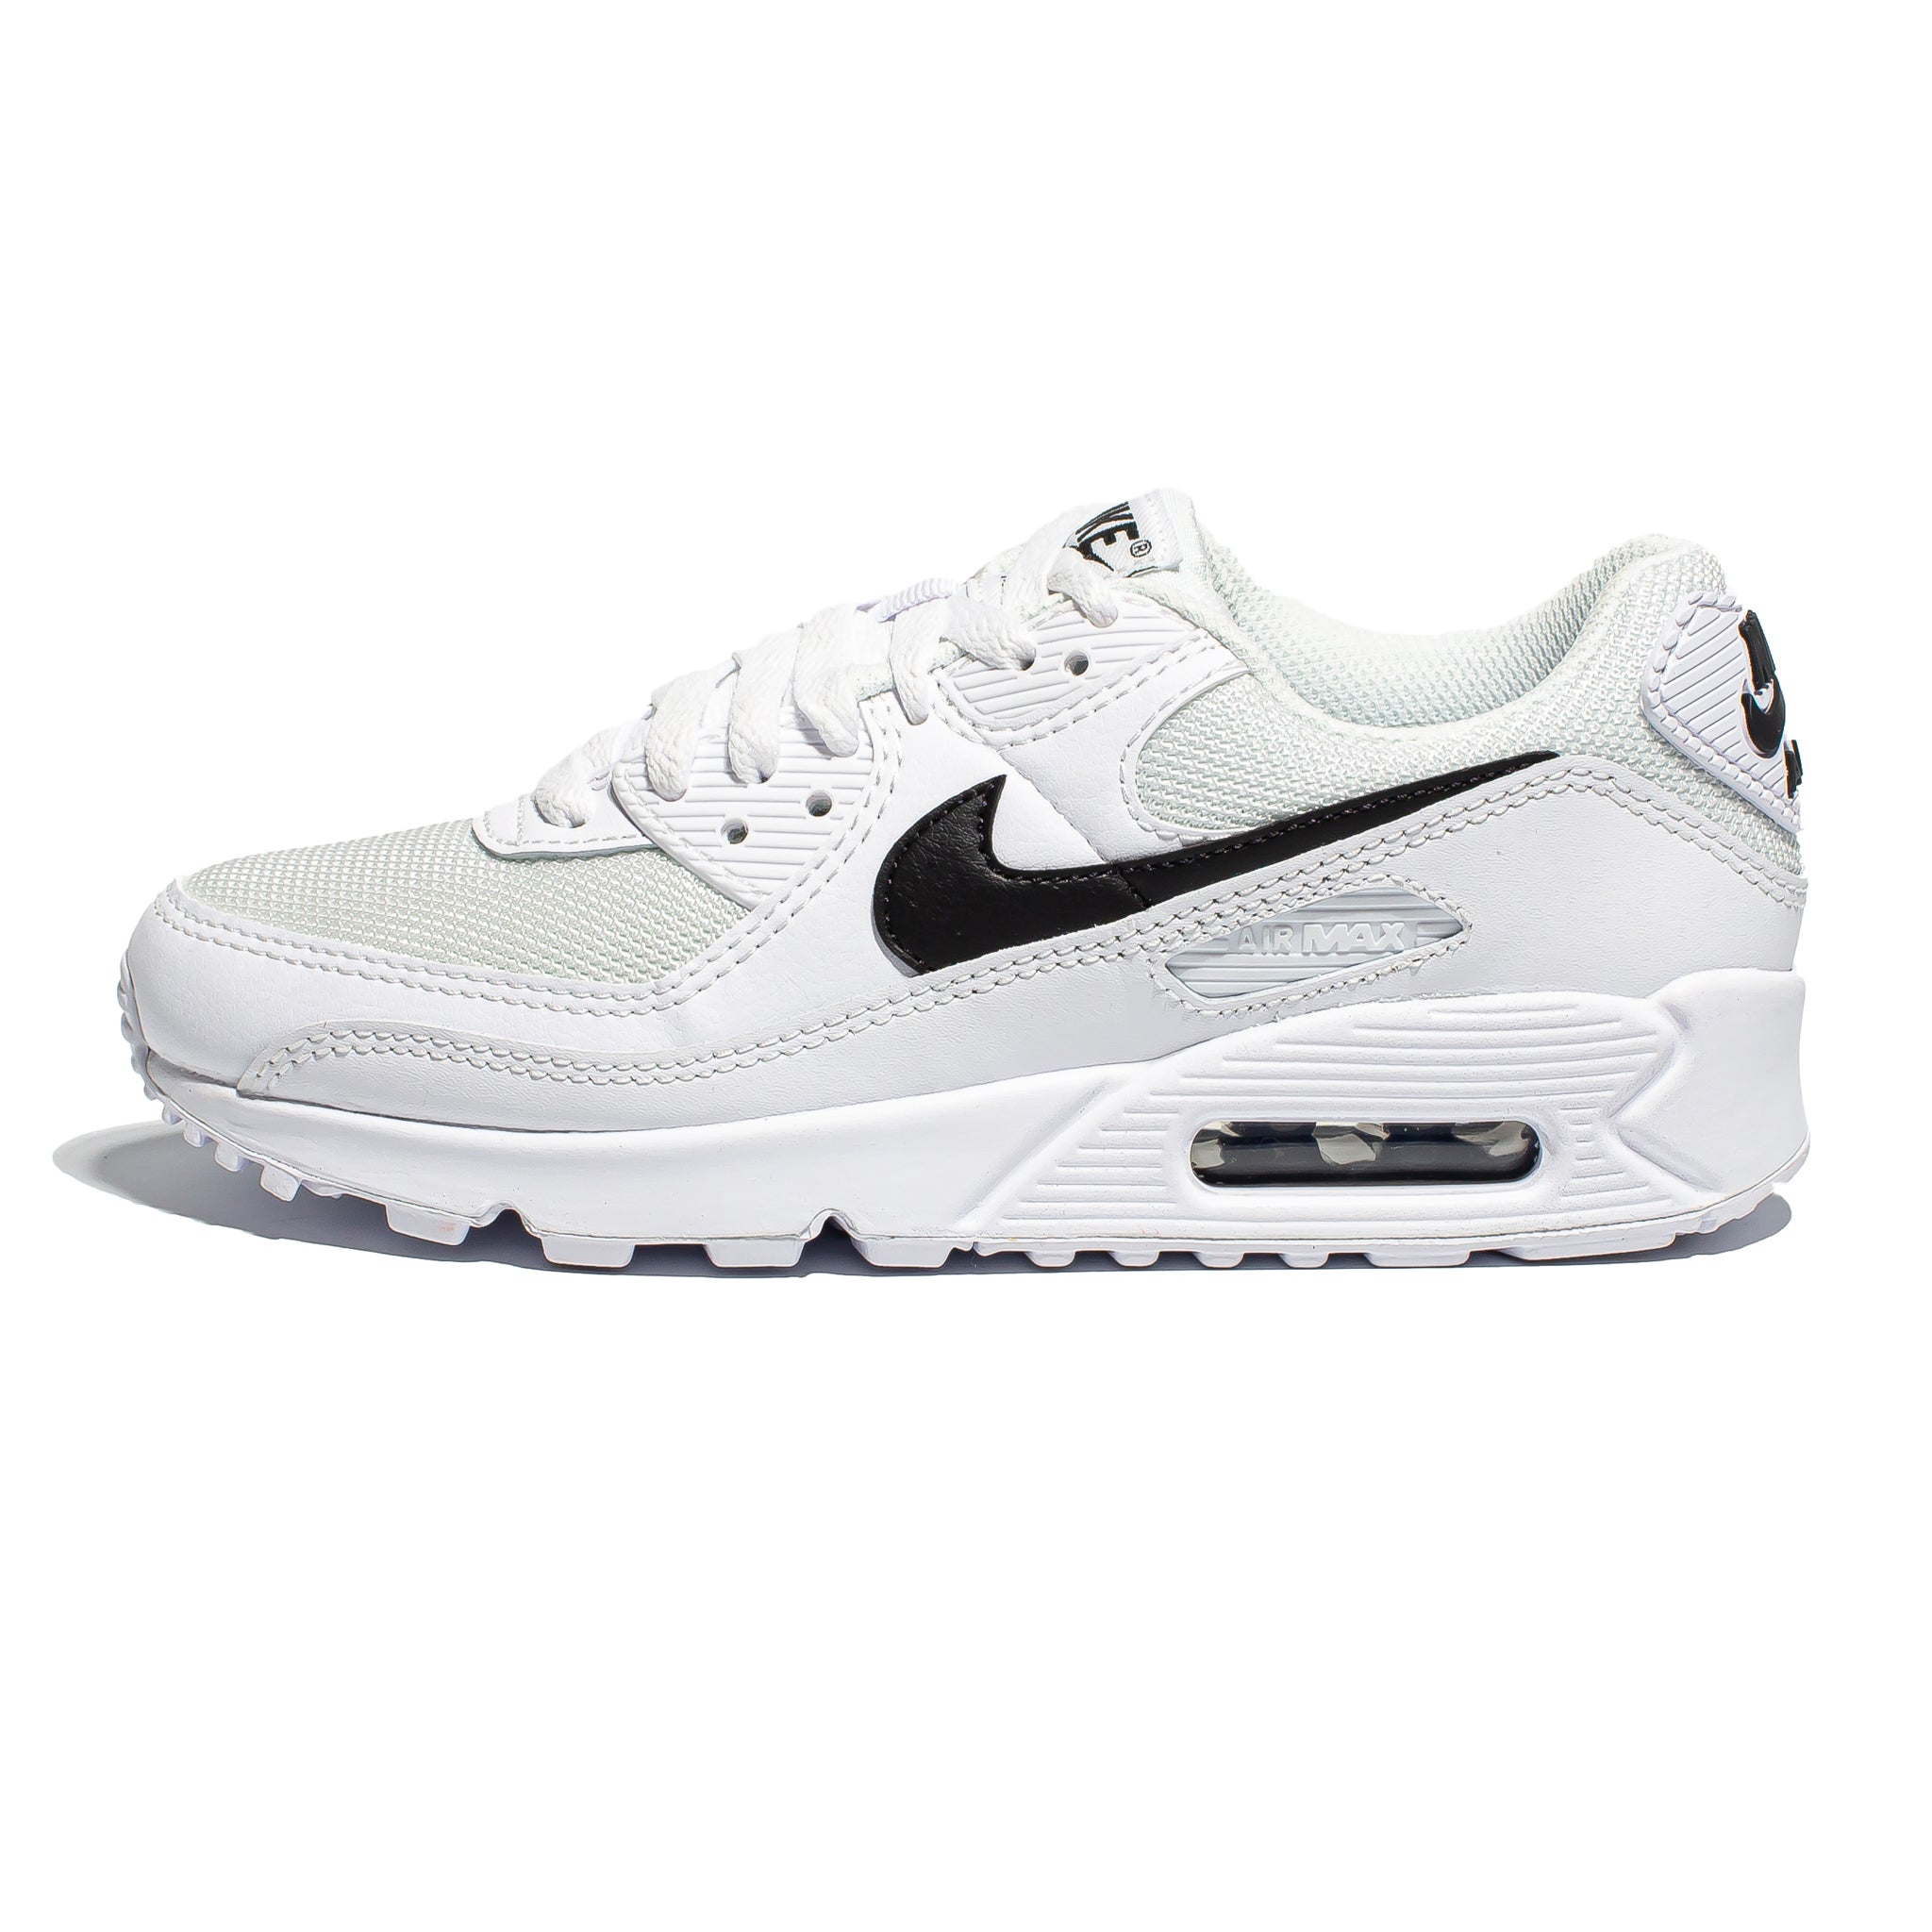 Nike Air Max 90 'White/Black'